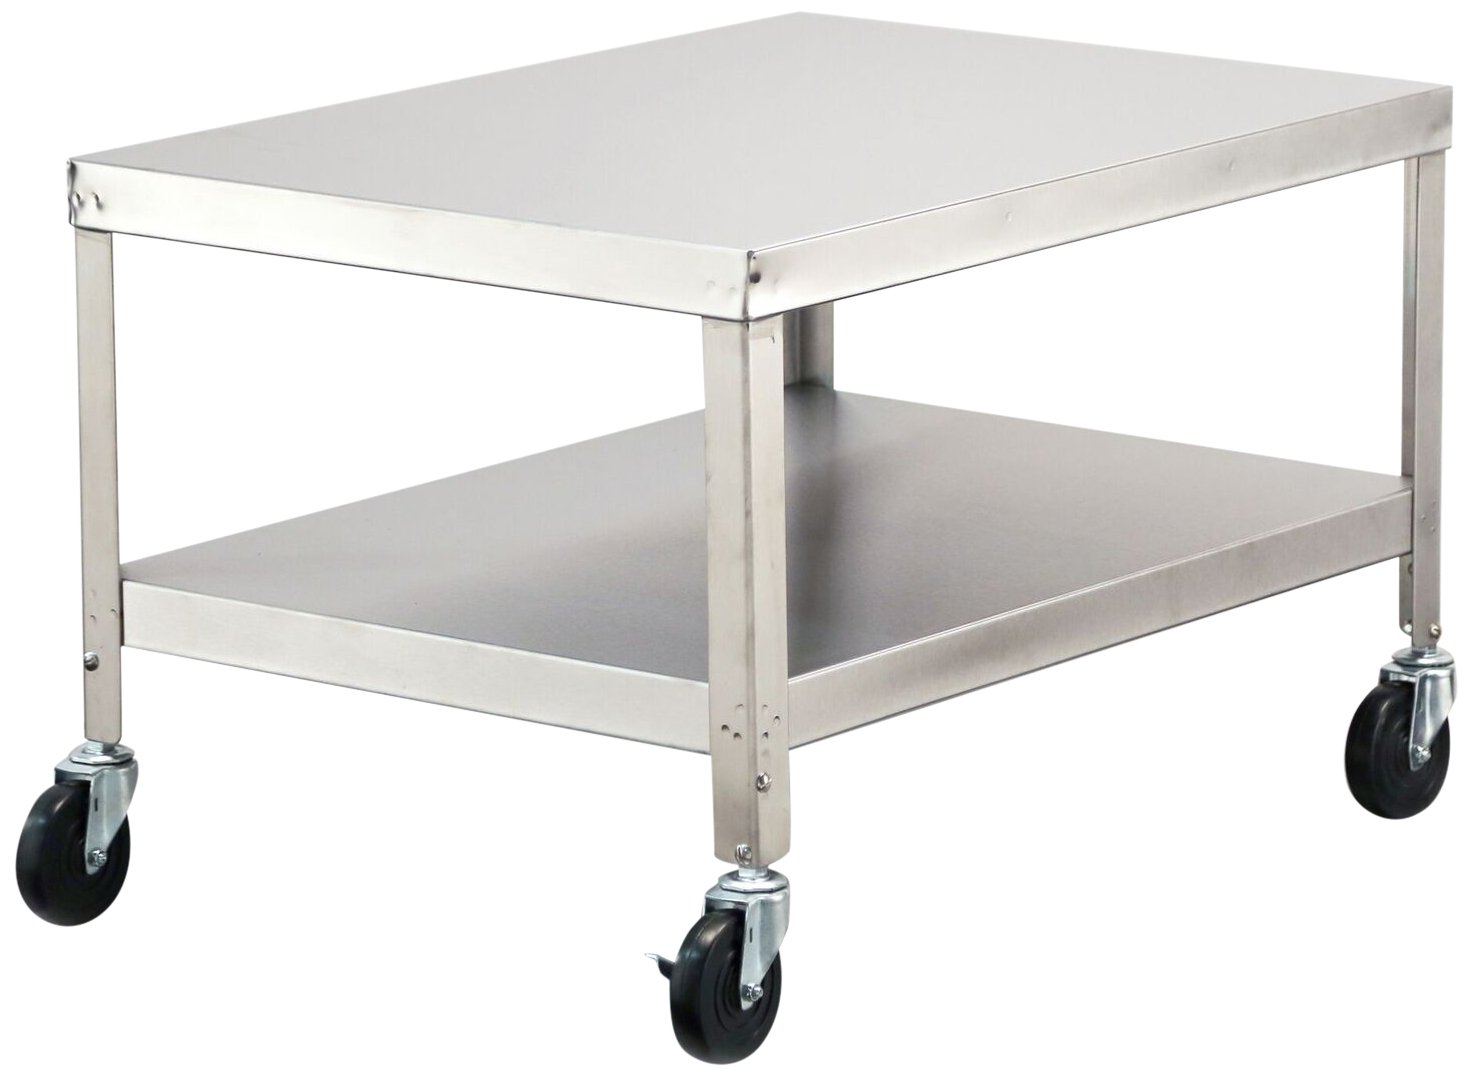 Lakeside 517 NSF-Mobile Machine Stand, Stainless Steel, 2 Shelves, 21.18'' Height, 33.25'' width, 33.25'' Length